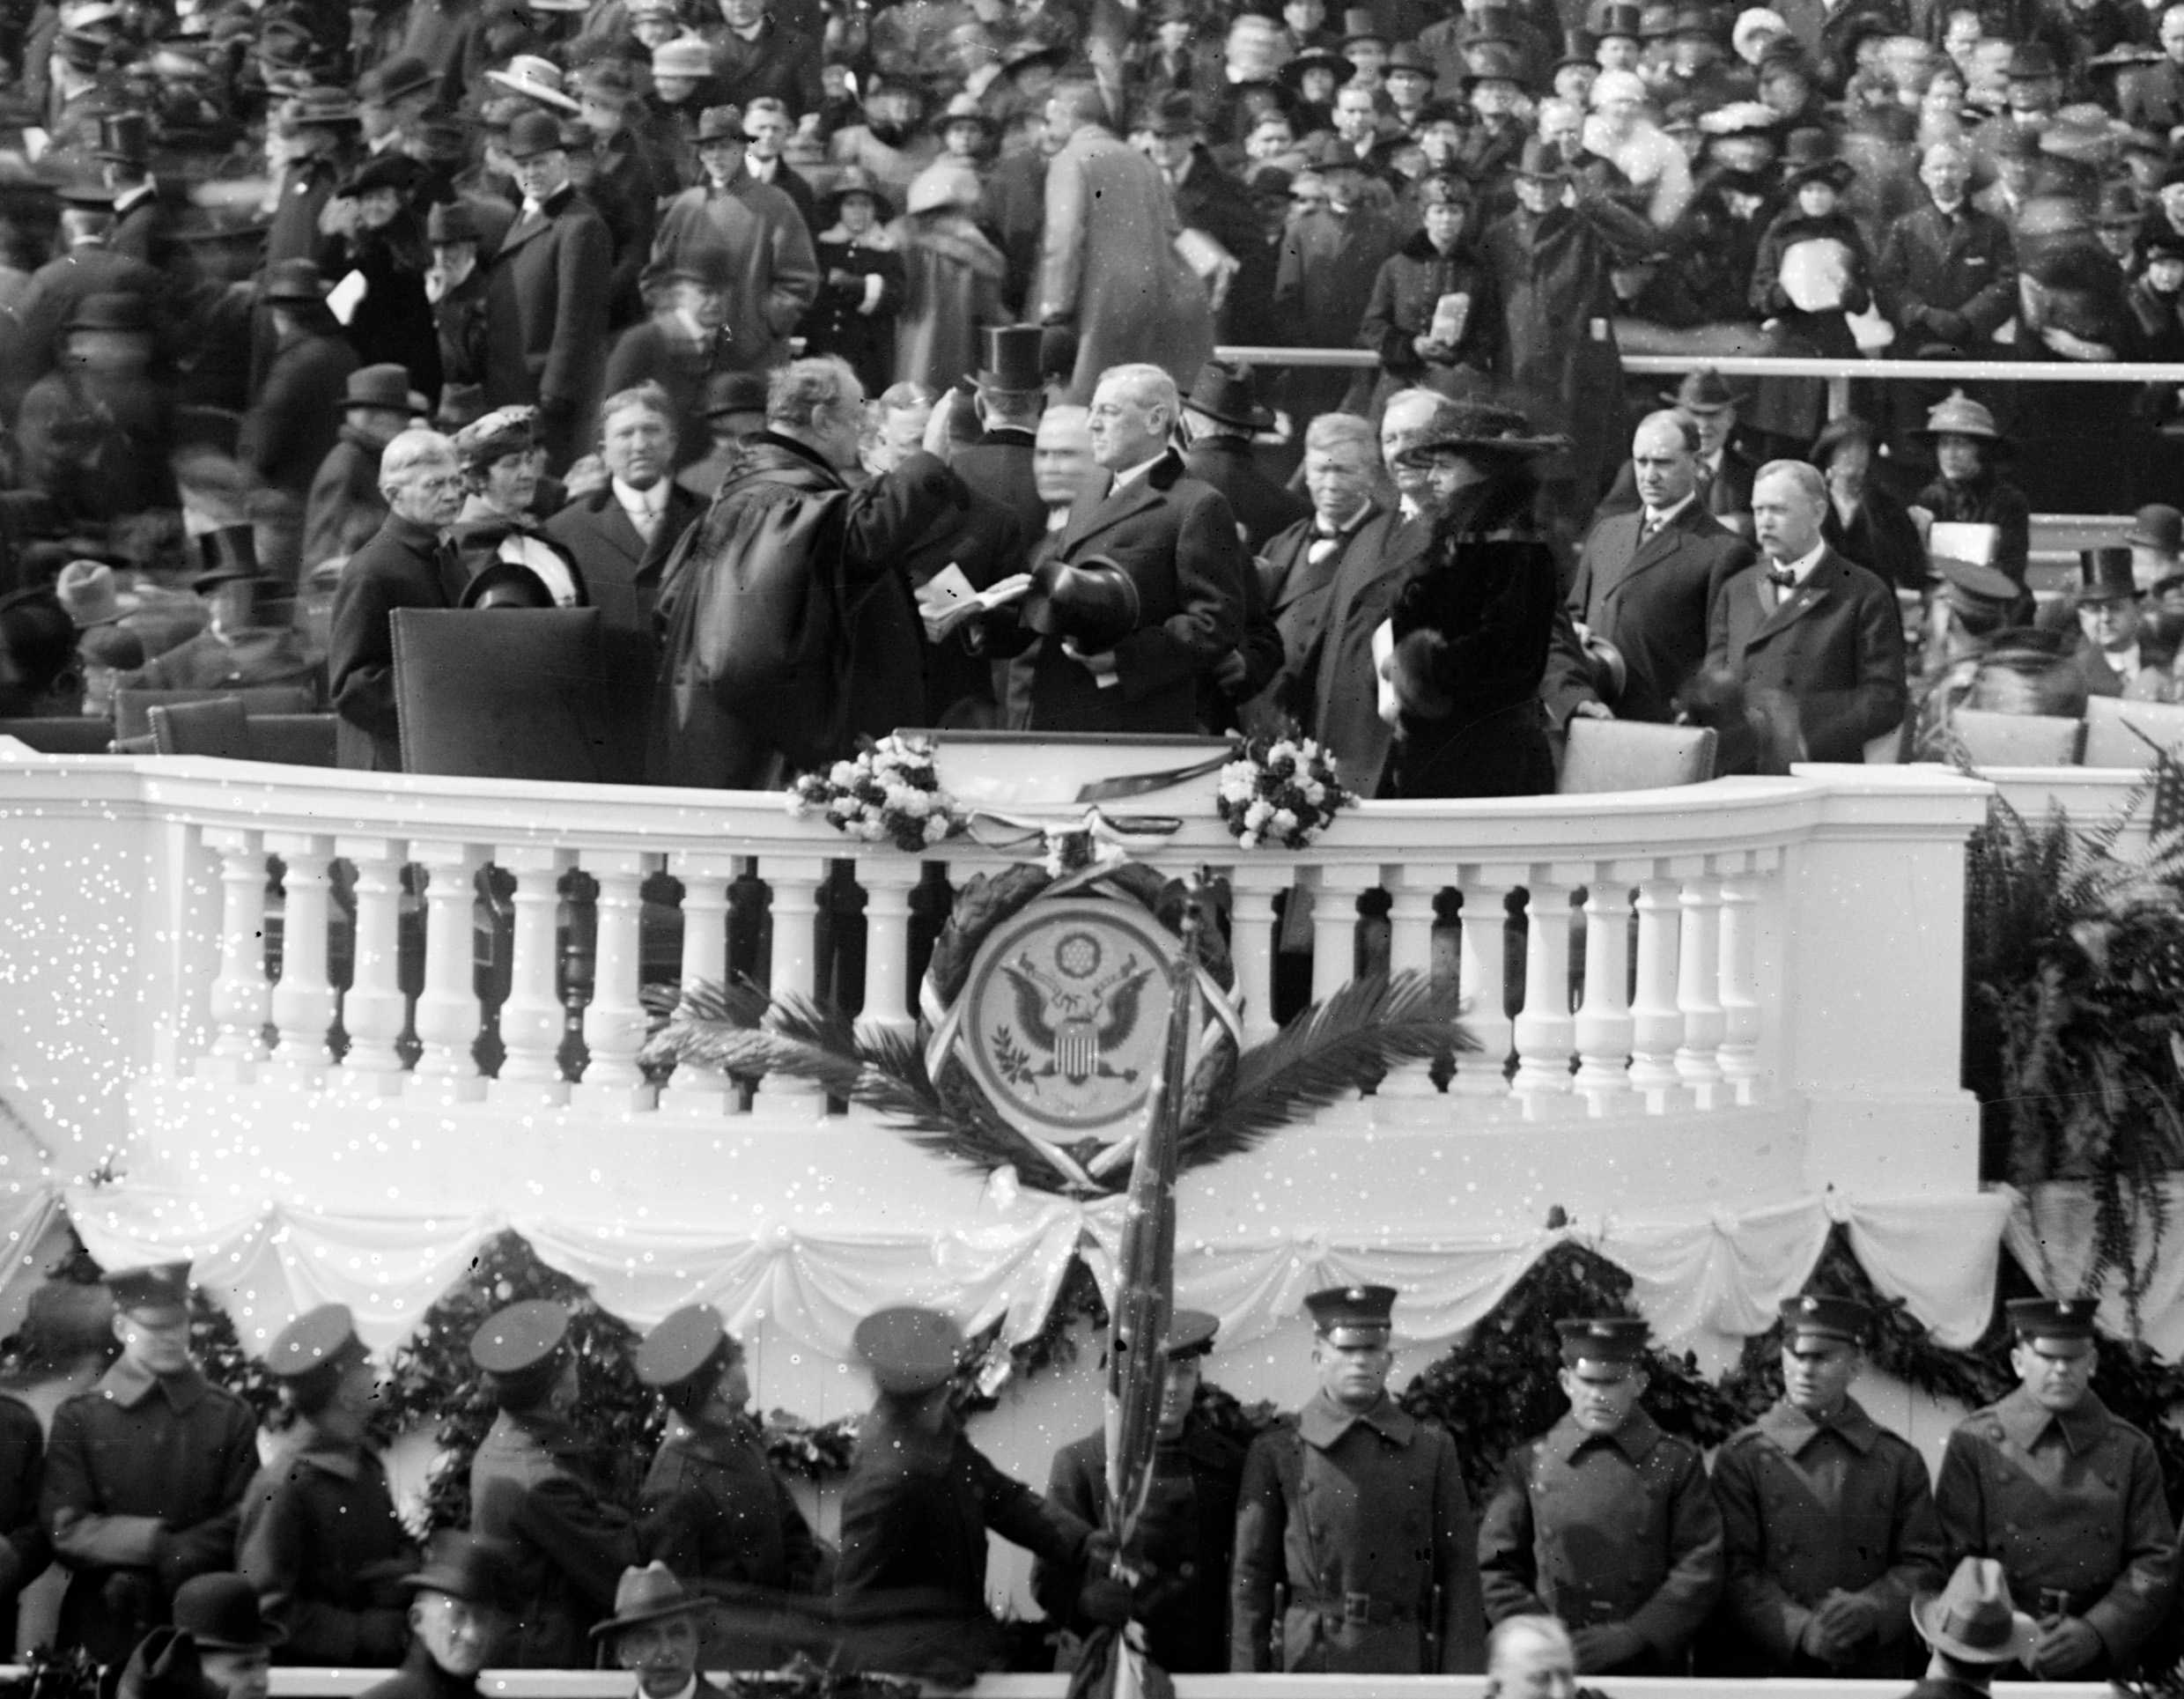 The inauguration of President Woodrow Wilson. Image courtesy of Wikipedia.